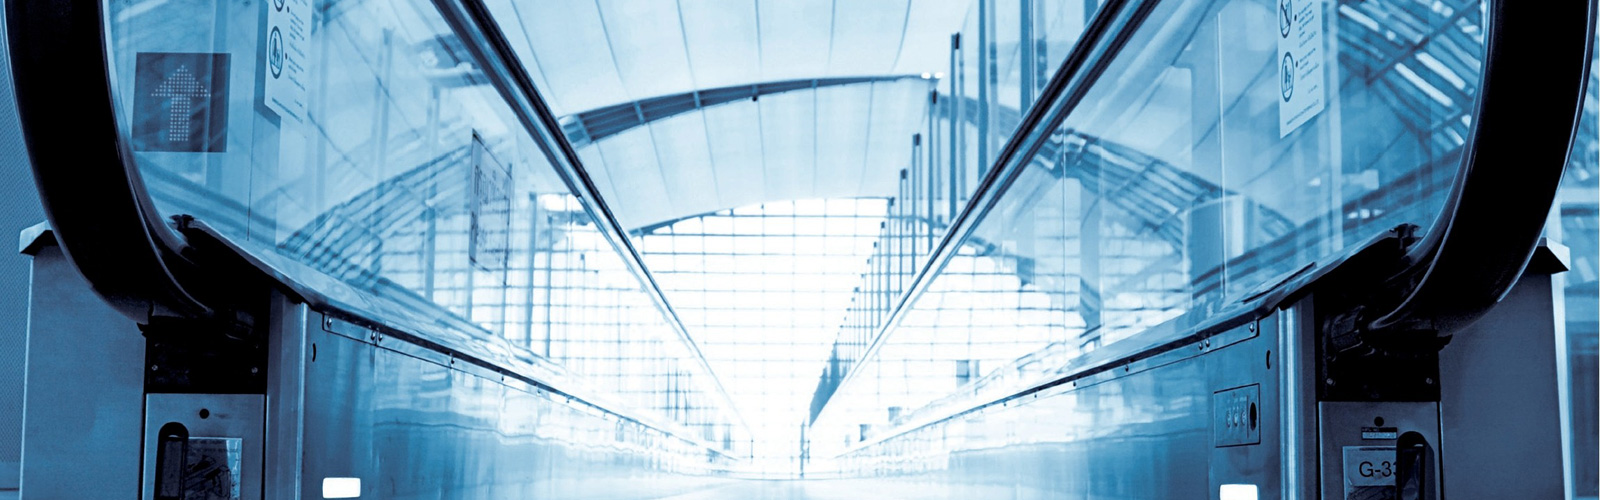 IMR srl is a leader in the installation, maintenance and repair of escalators, moving walkways and lifts